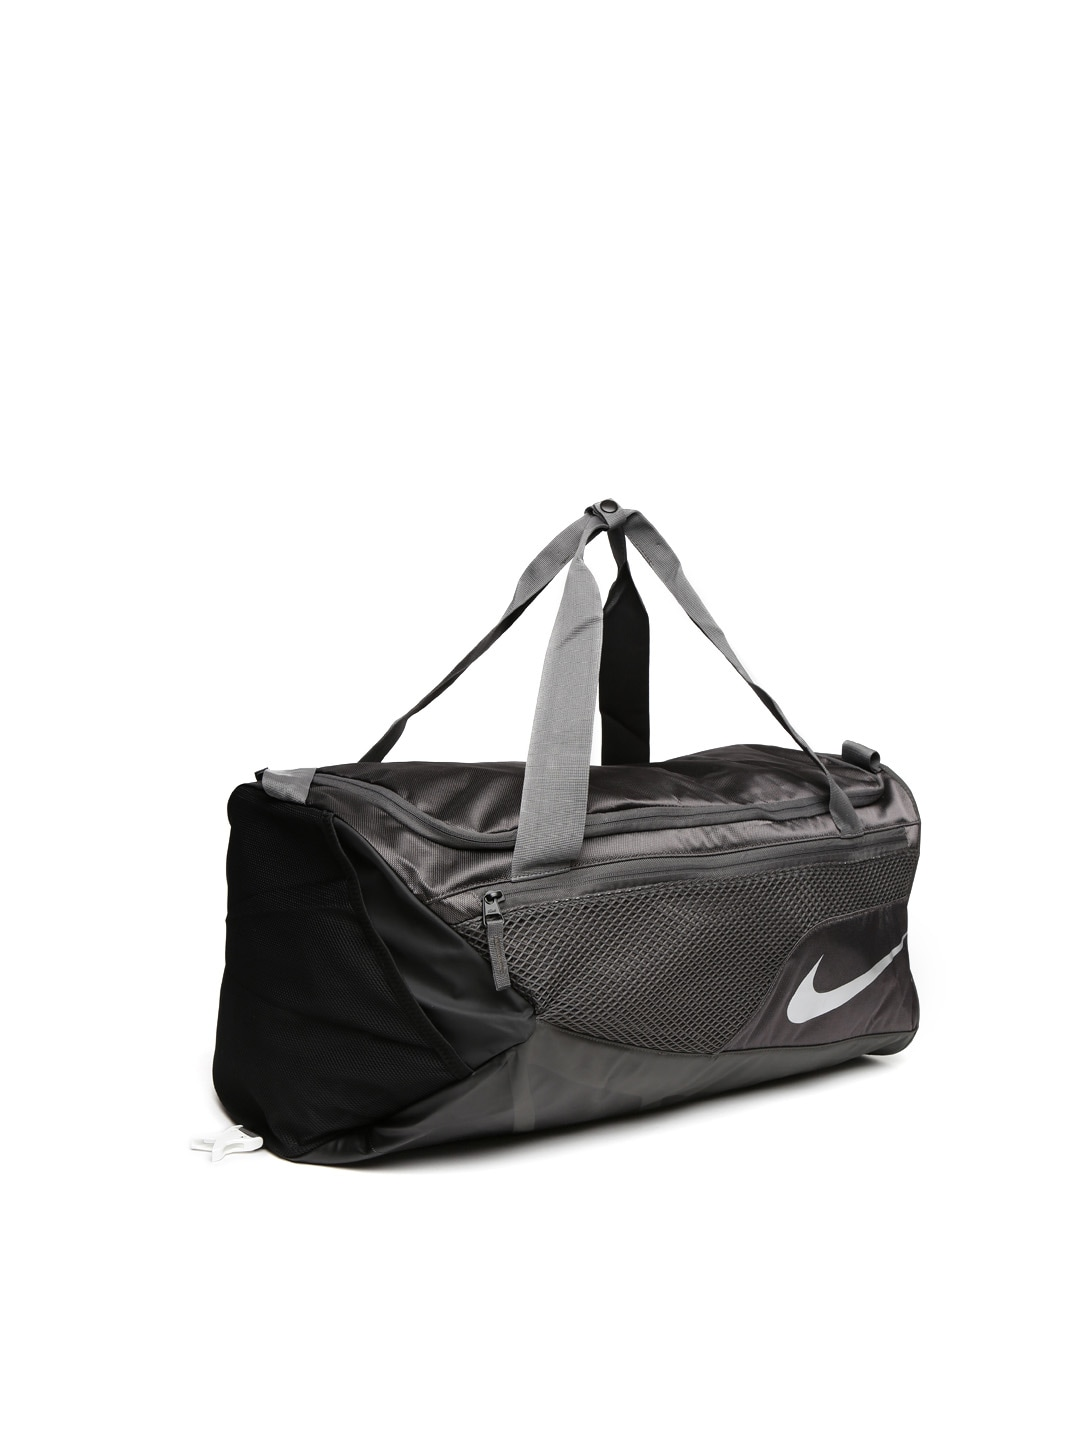 66c2483178ef Buy Nike Duffle Bag Online India- Fenix Toulouse Handball